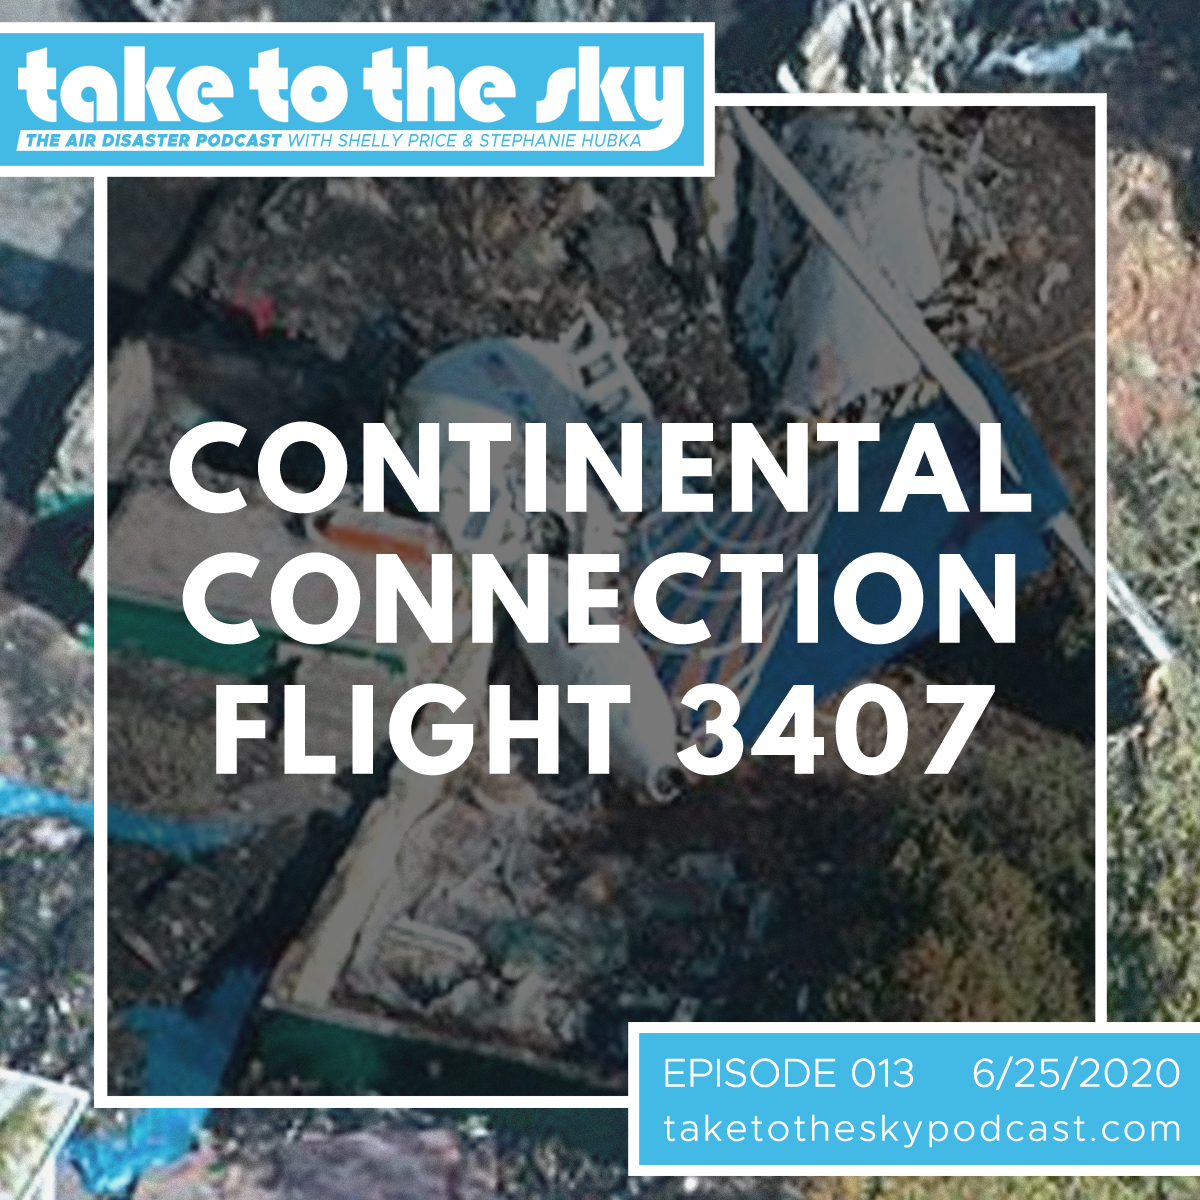 Take to the Sky Episode 013: Continental Connection Flight 3407